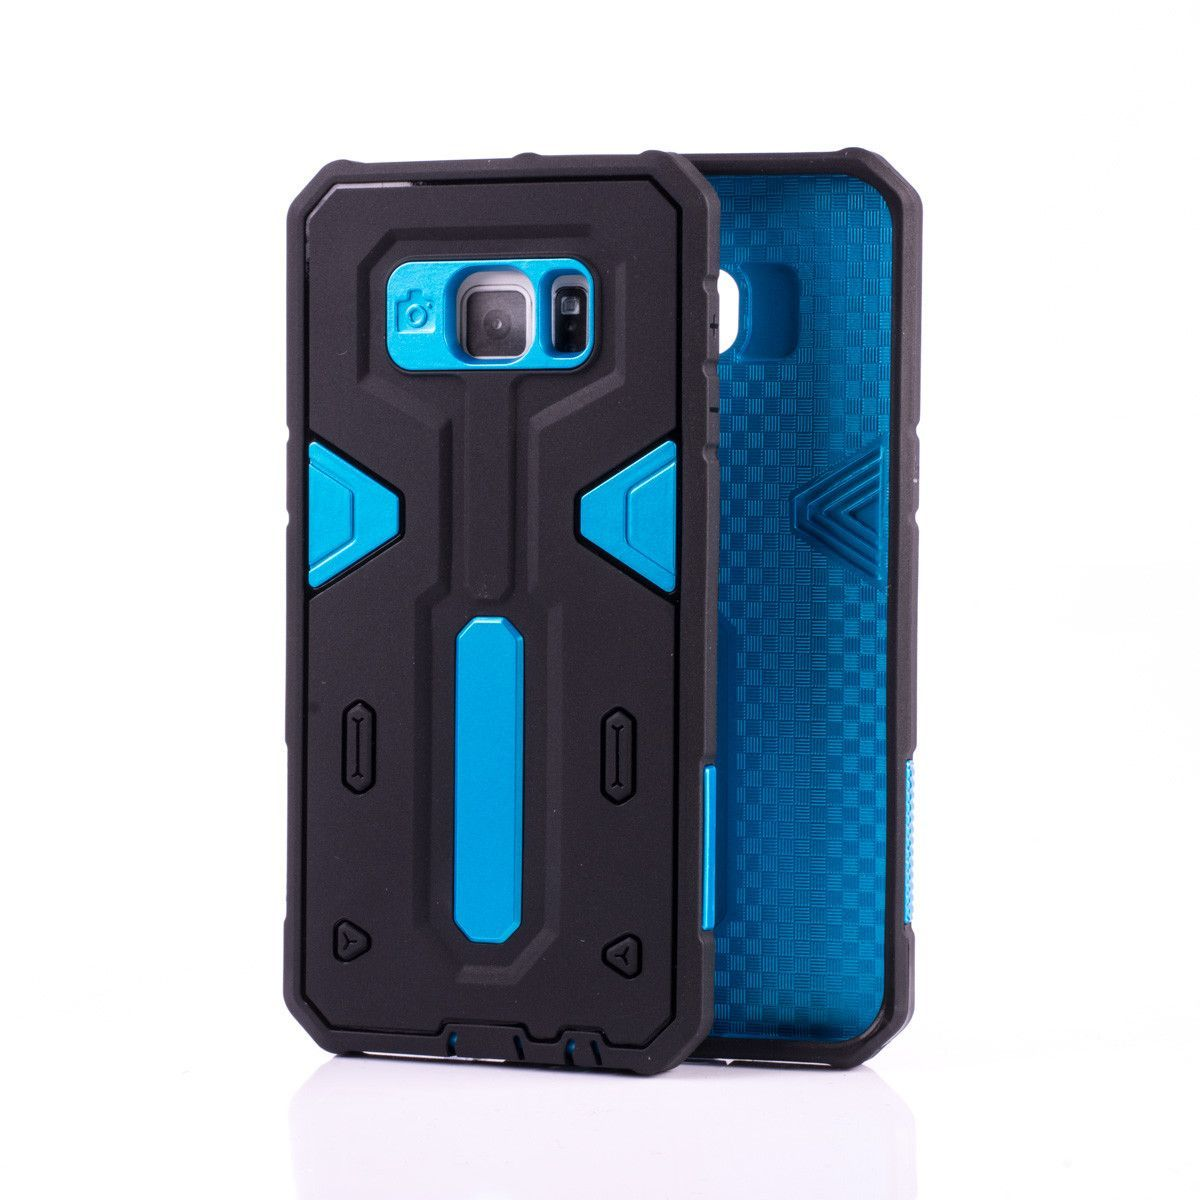 Hybrid Shockproof Rugged Rubber Hard Cover Case Skin for Samsung Galaxy 6 Edge Plus